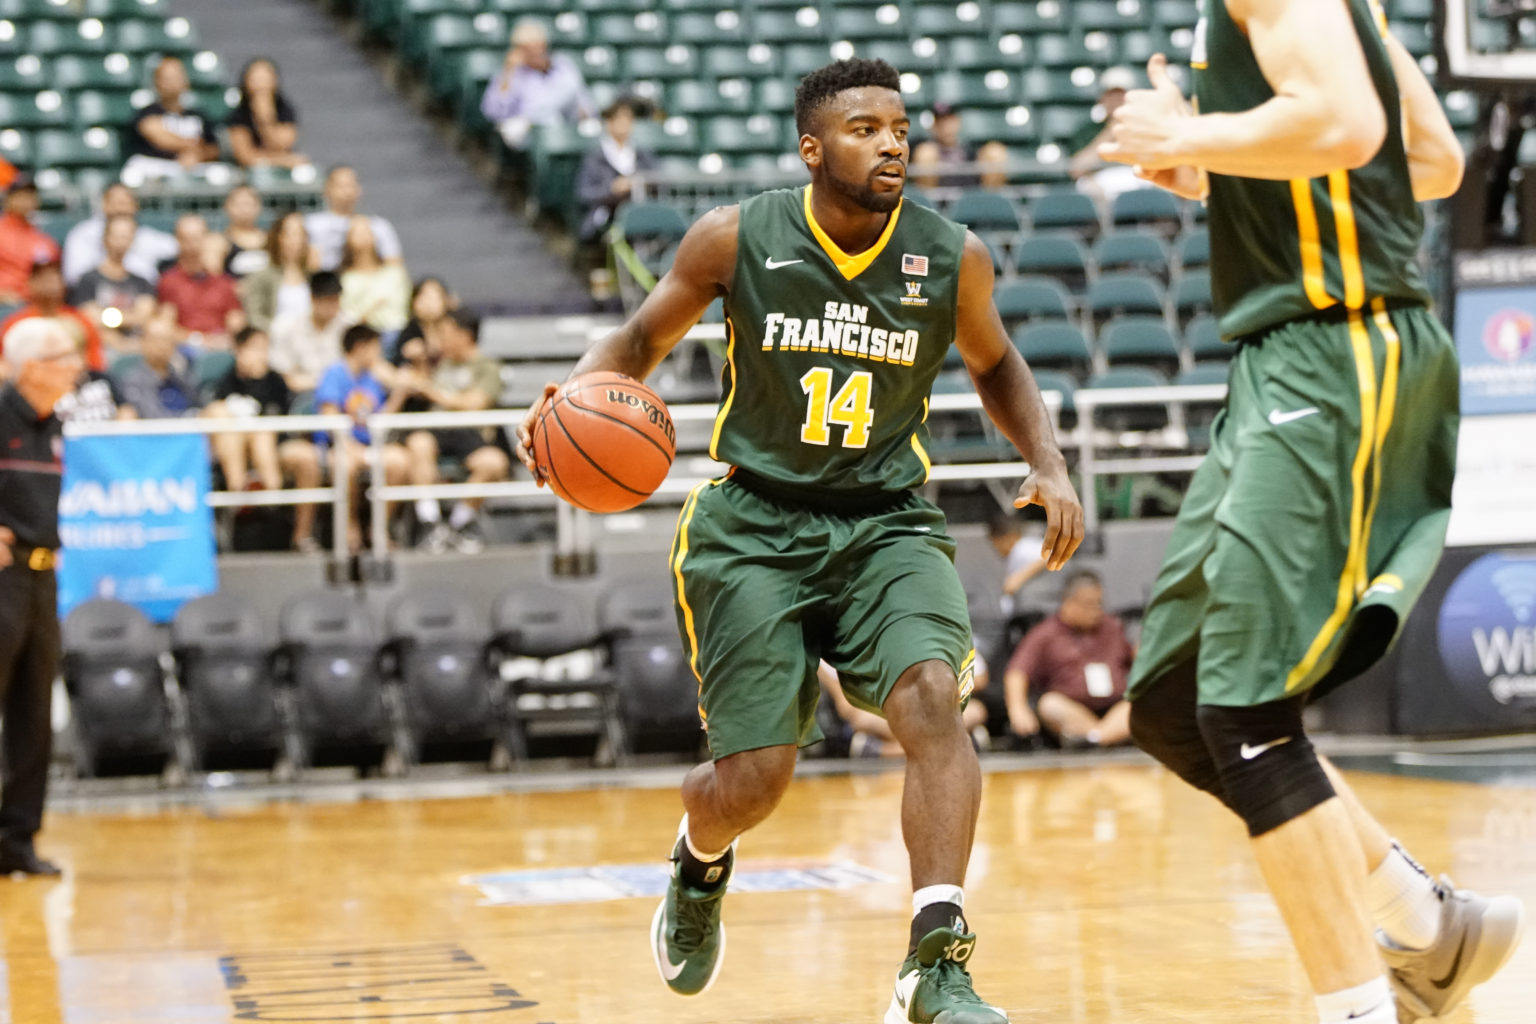 Charles Minlend dribbles the ball during the Stan Sheriff Center in Honolulu, Hawaii on Dec. 25, 2016, during the Championship Game of the Diamond Head Classic, USF MBB vs SDSU. (Courtesy / Chris M. Leung for USF Dons Athletics)